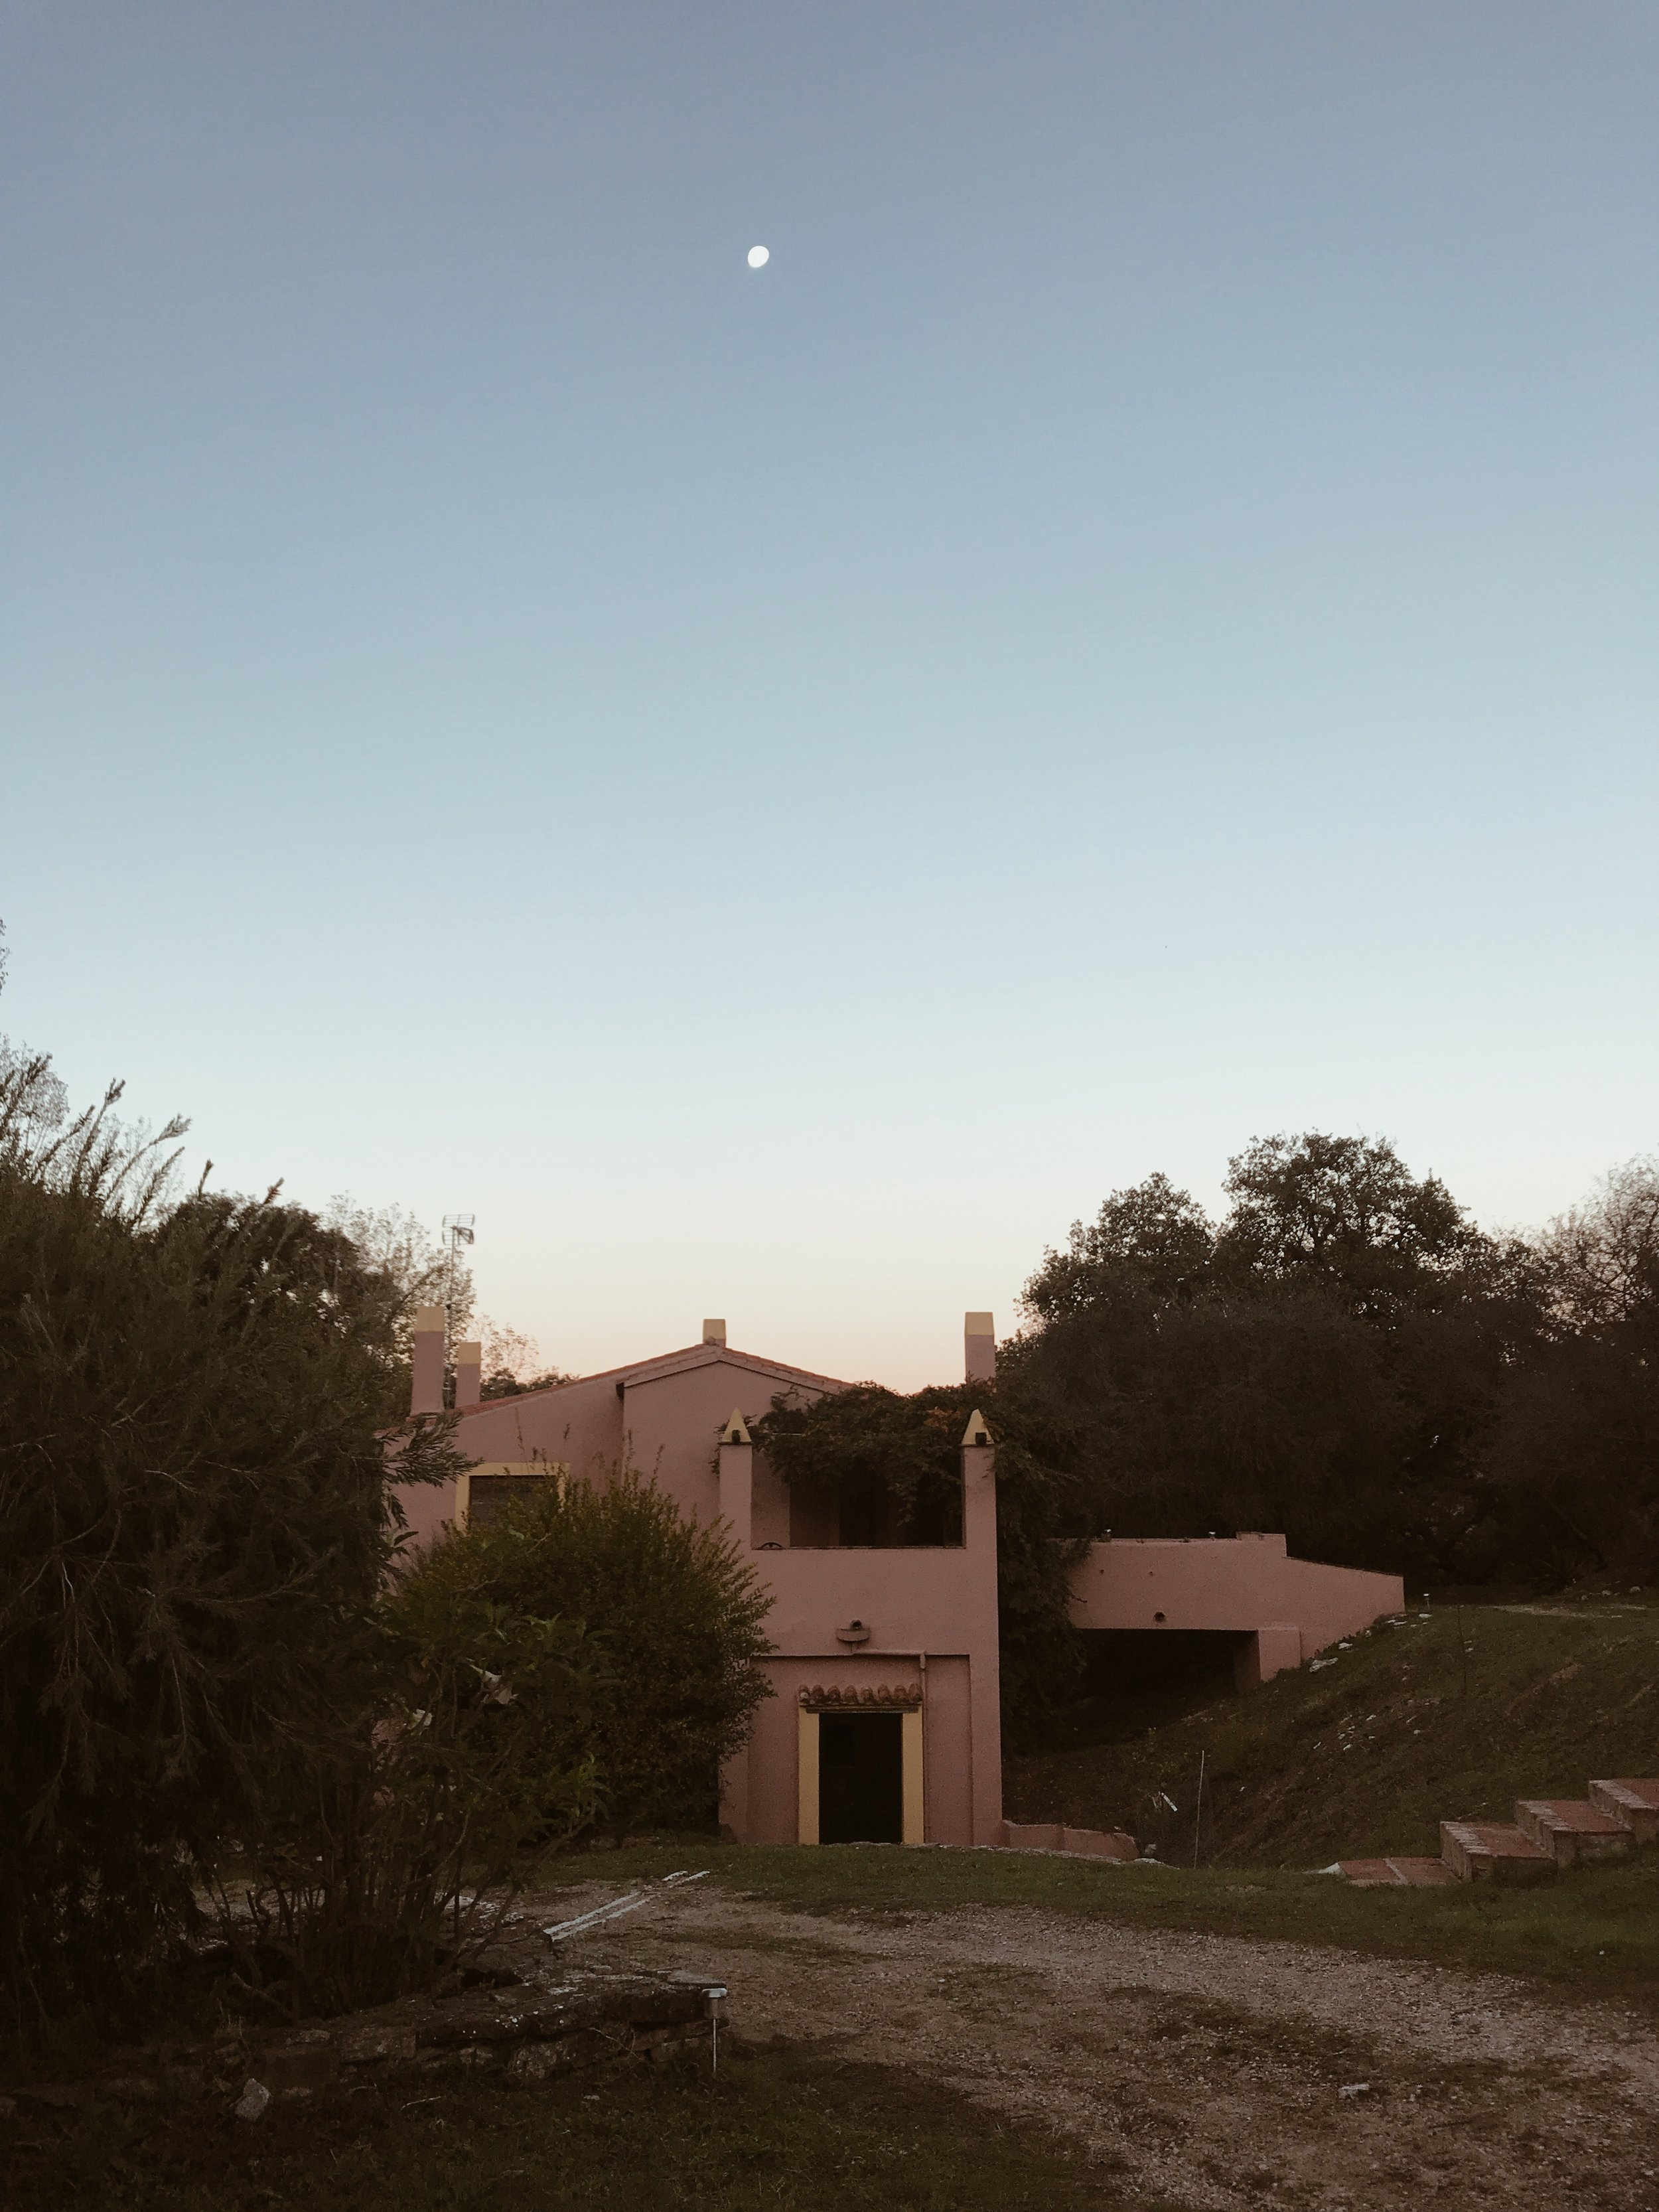 the light pink house